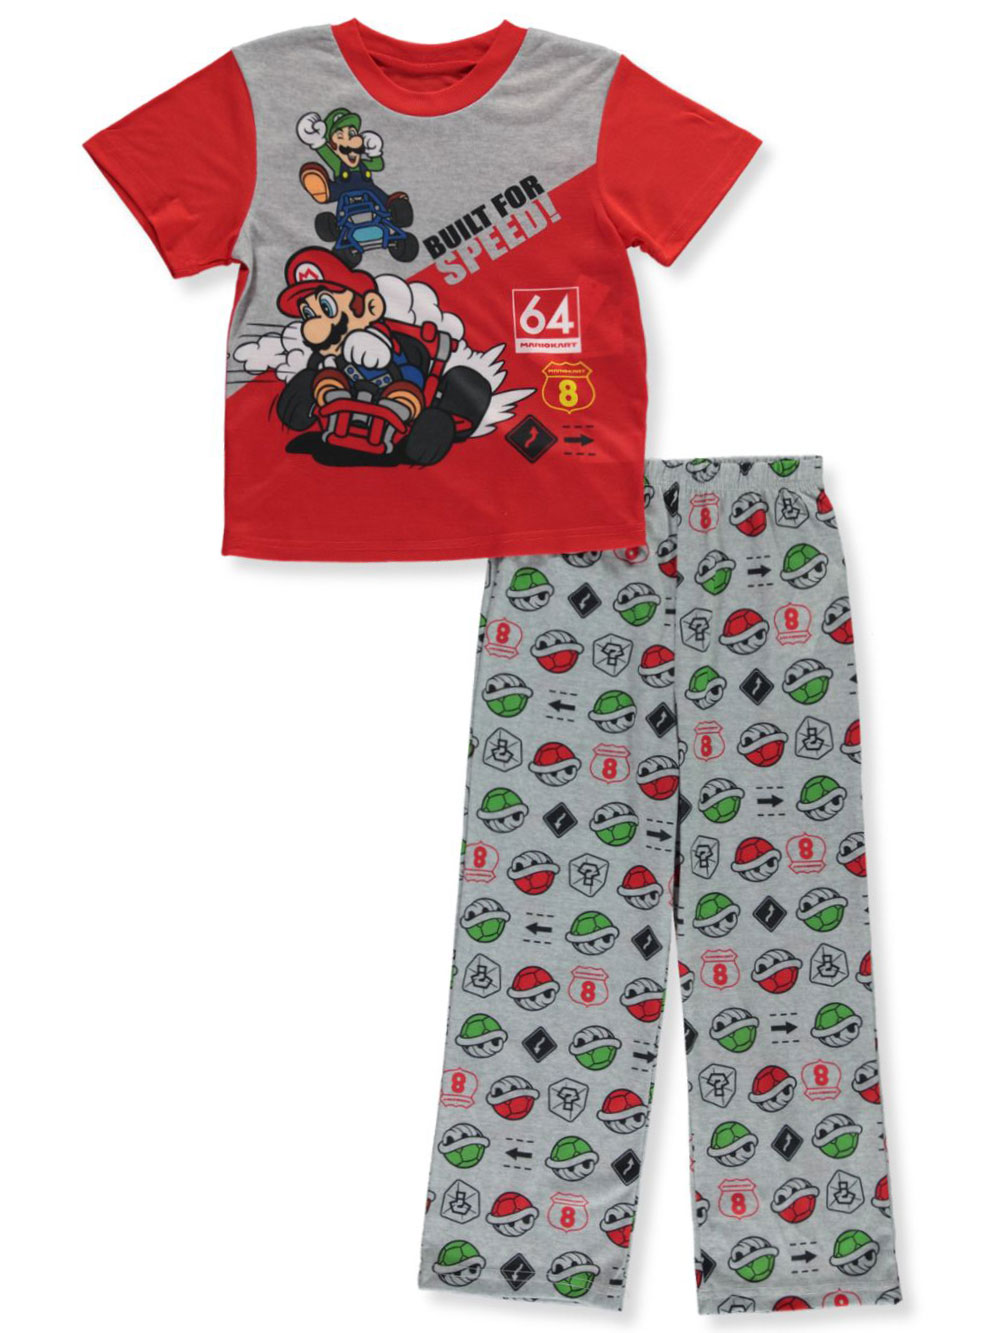 Gray/red Sleepwear